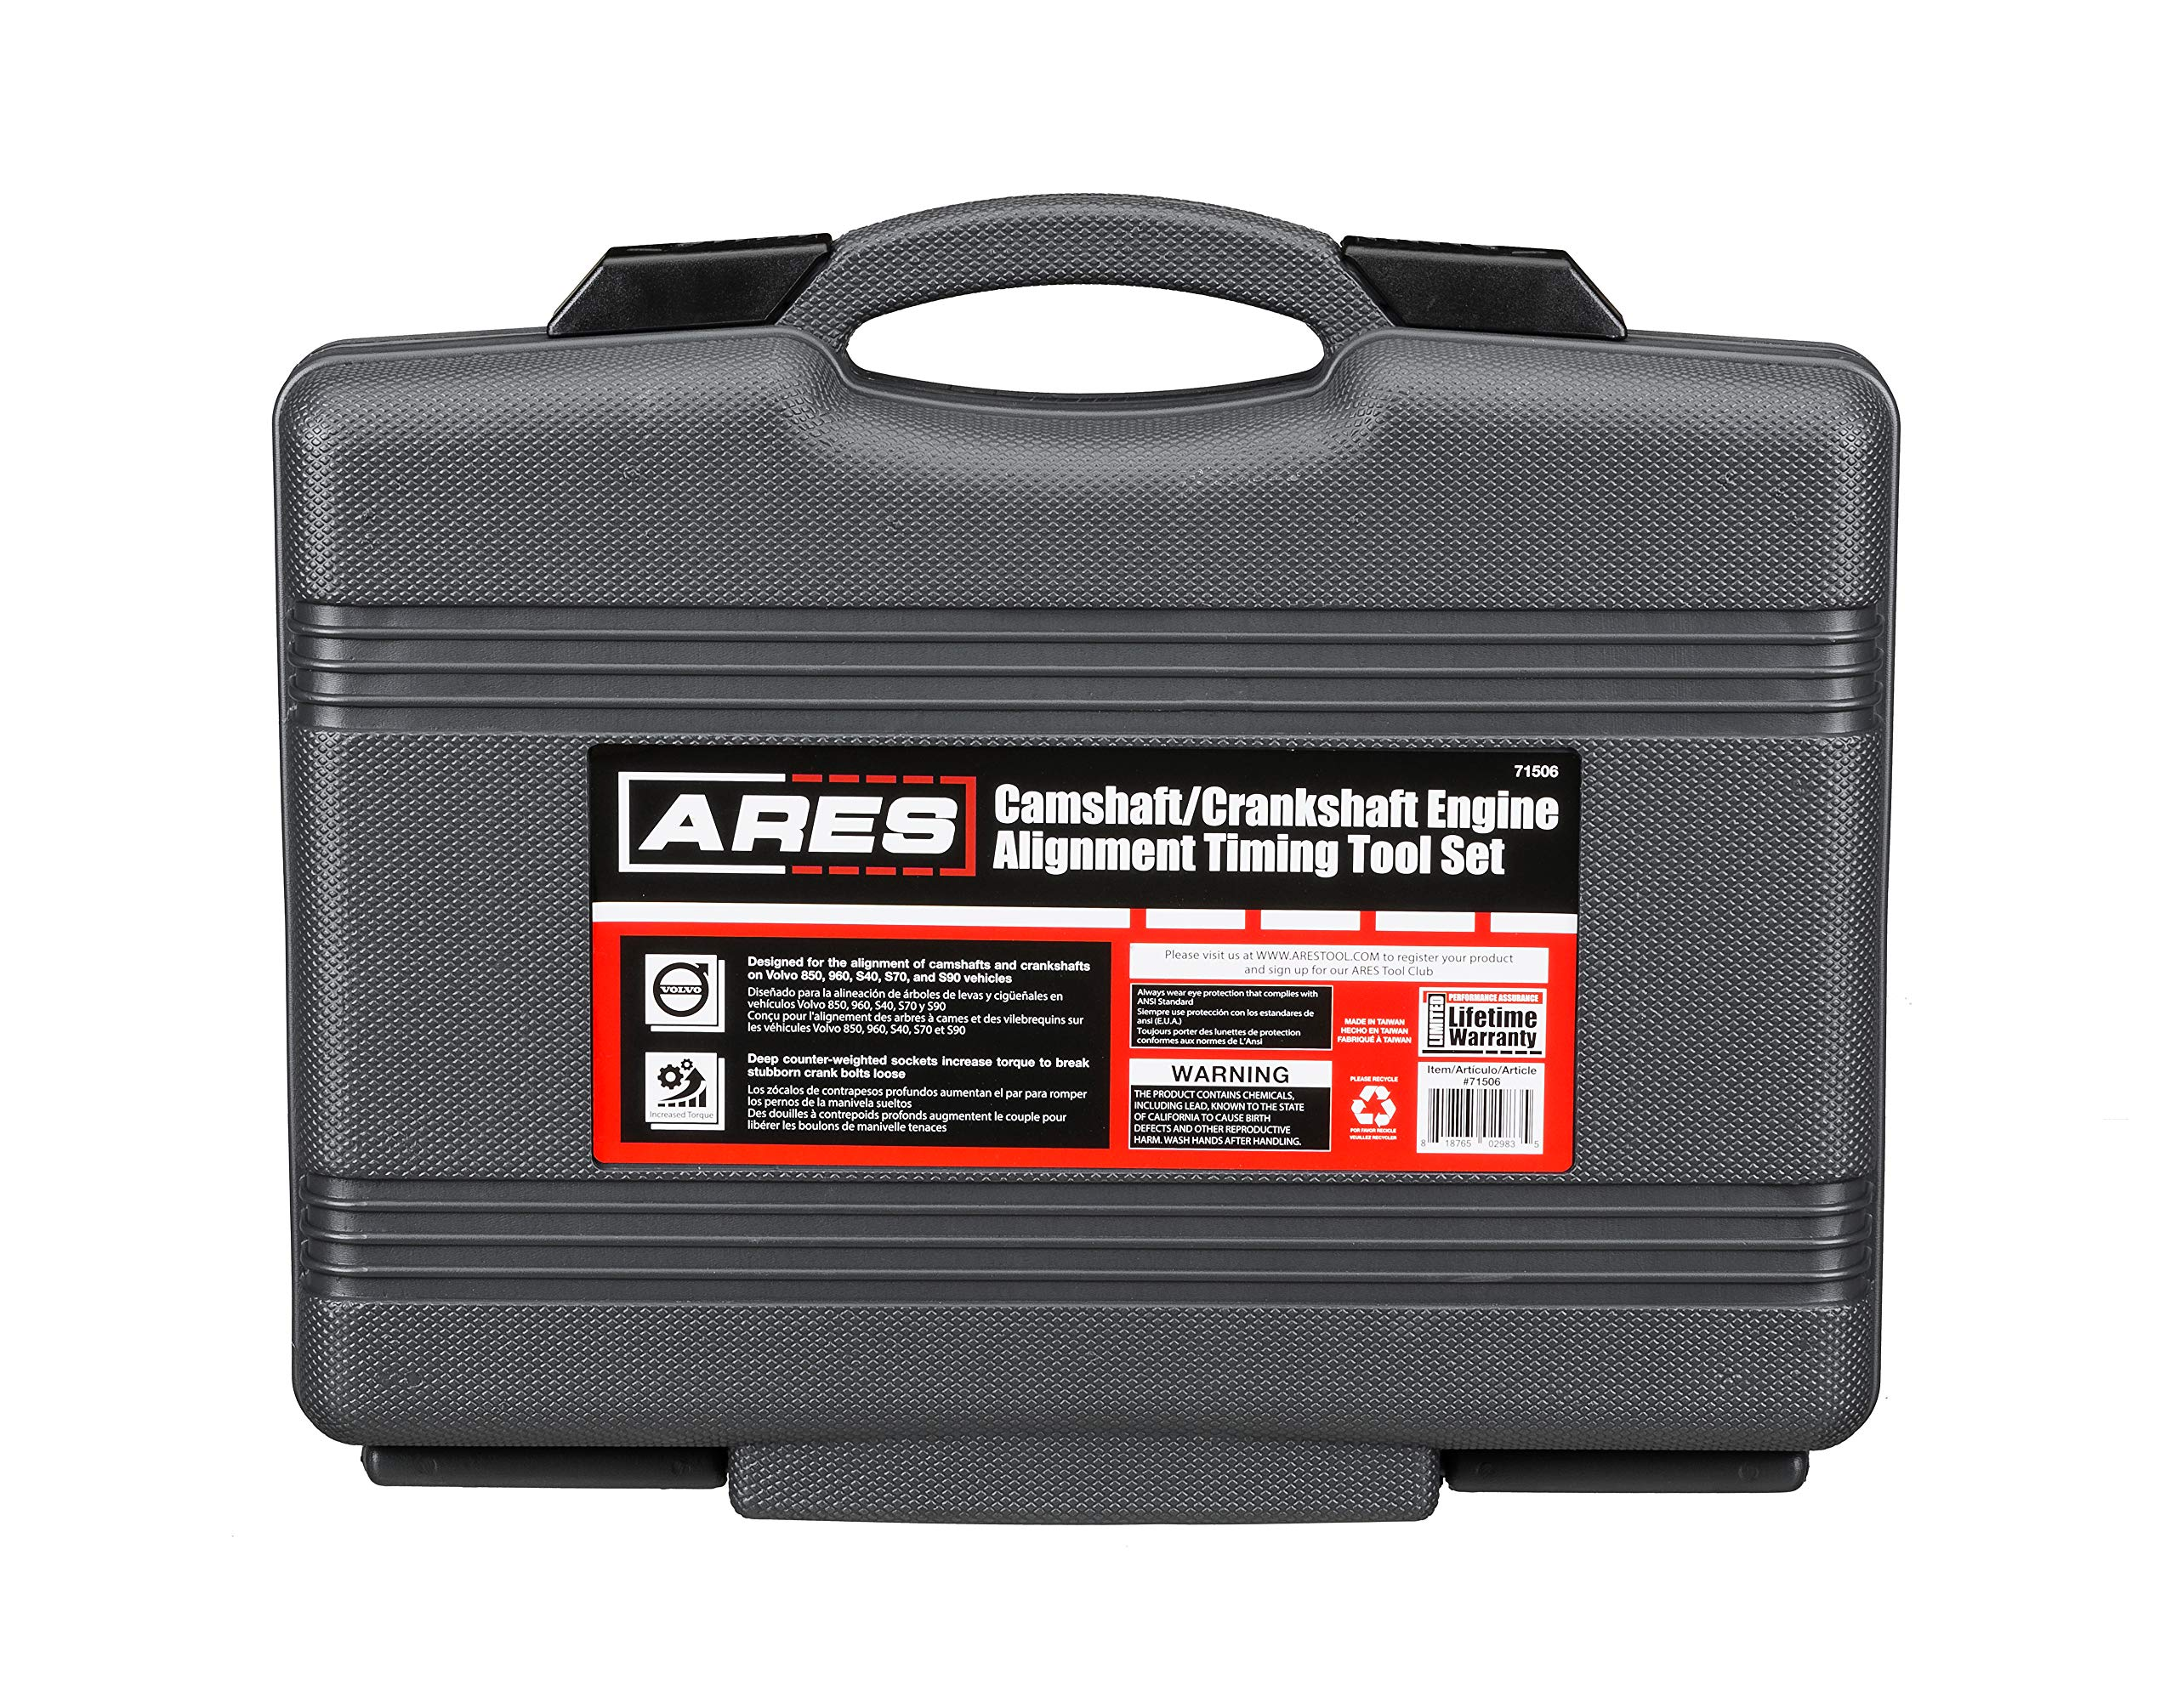 ARES 71506 | Volvo Camshaft, Crankshaft, and Timing Alignment Master Tool Set | Deep Counter-Weighted Sockets for Increased Torque | Correctly Install Camshafts with Cam Cover by ARES (Image #5)